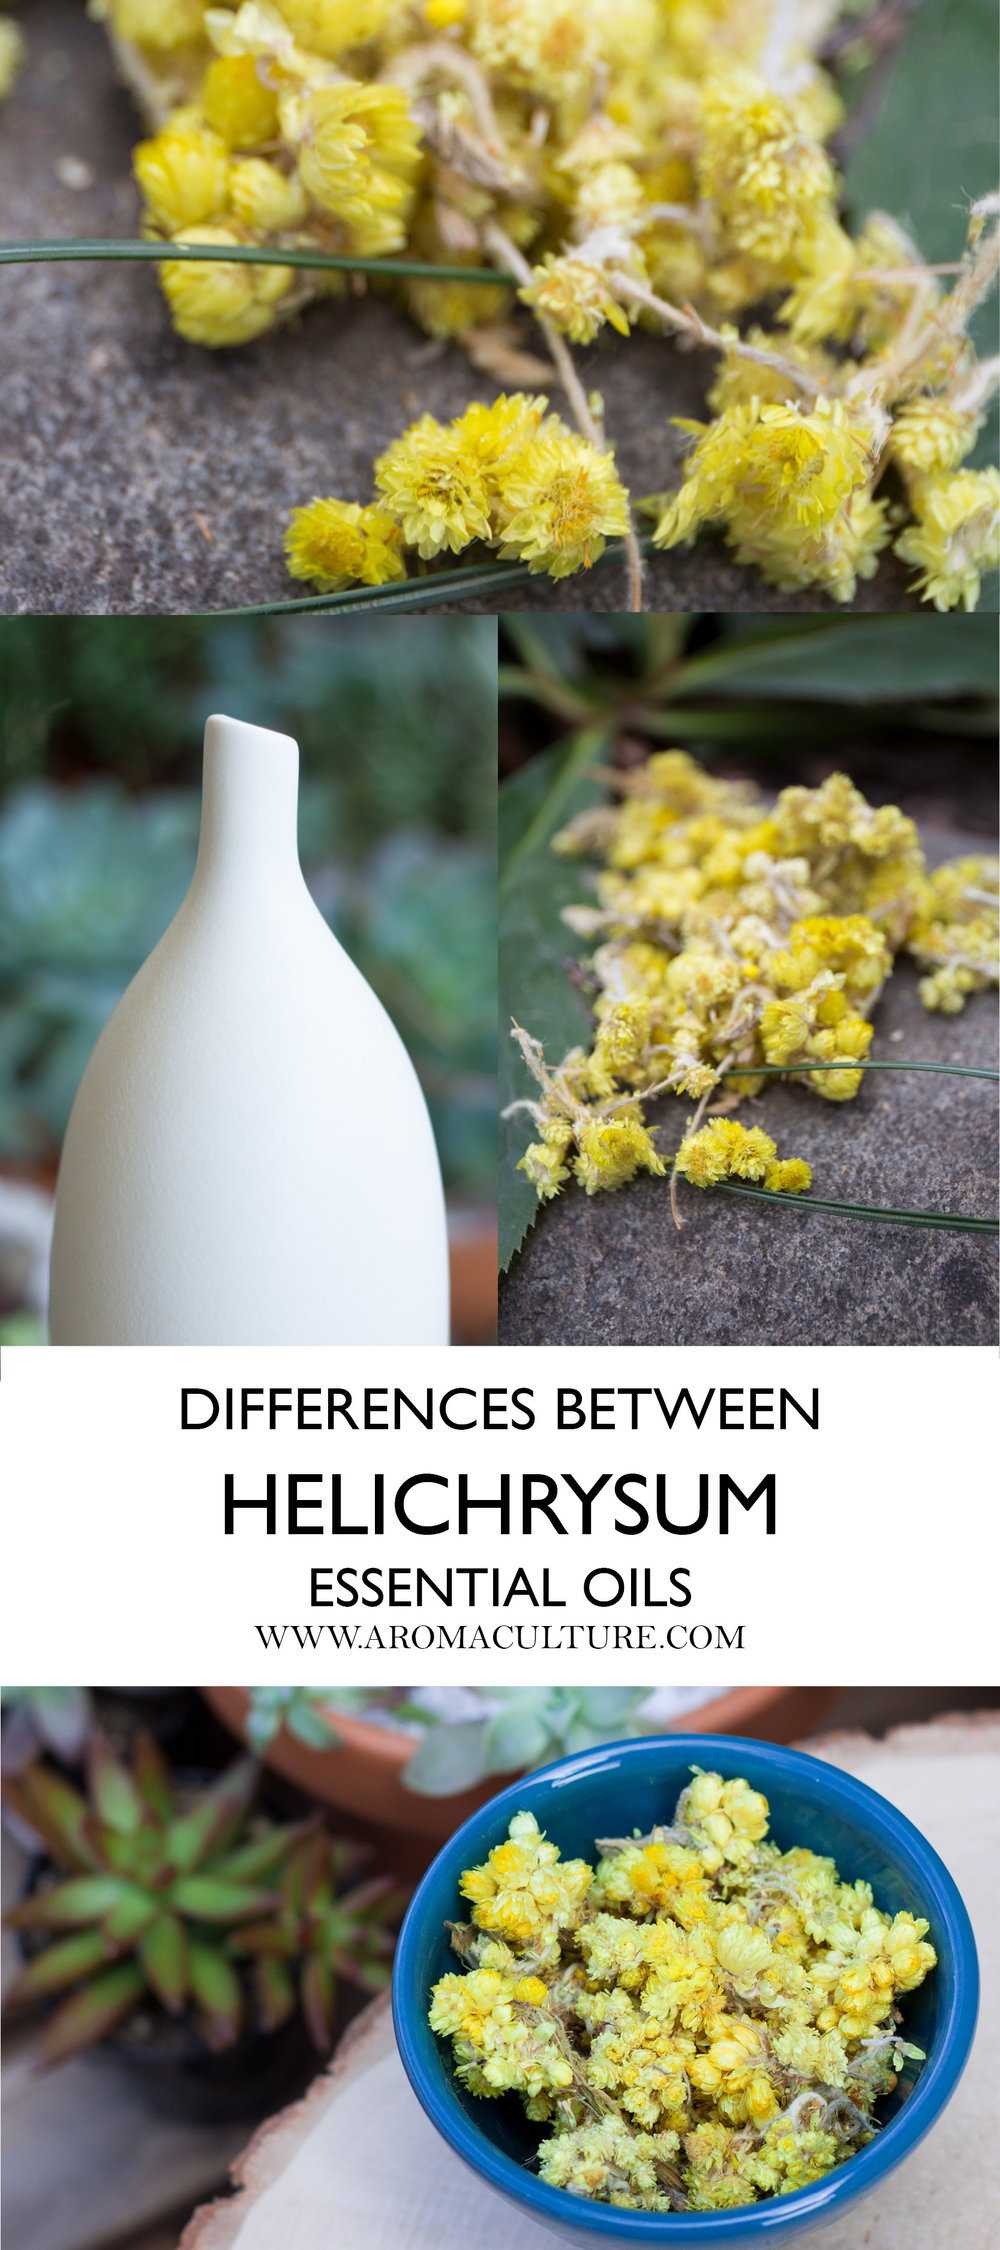 THE DIFFERENCES BETWEEN HELICHRYSUM ESSENTIAL OILS AROMACULTURE.jpg